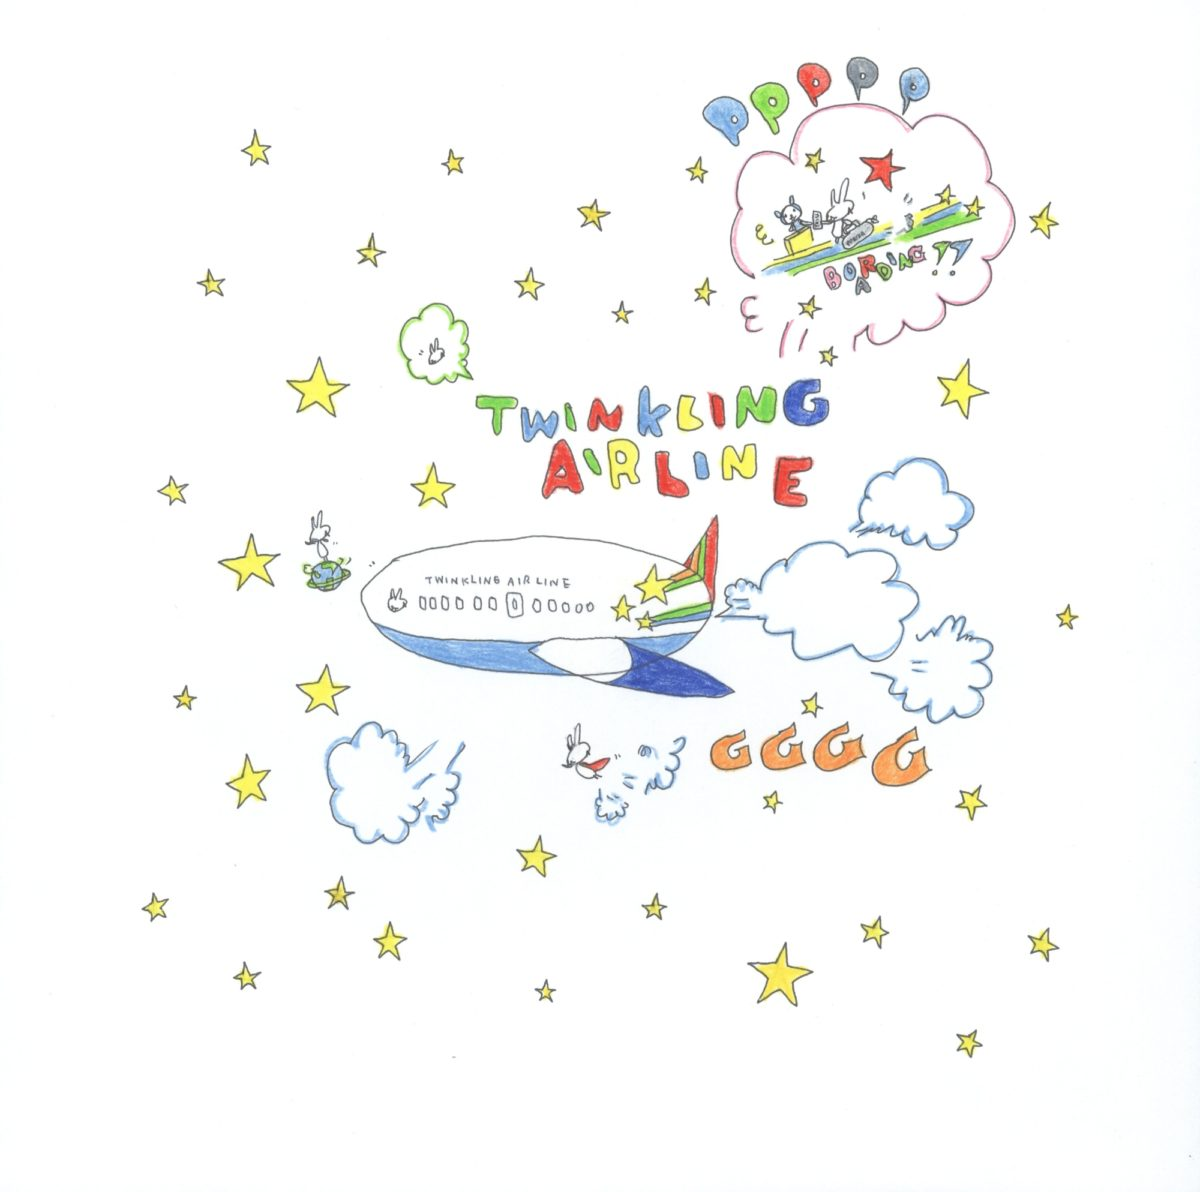 Twinkling Airline 124